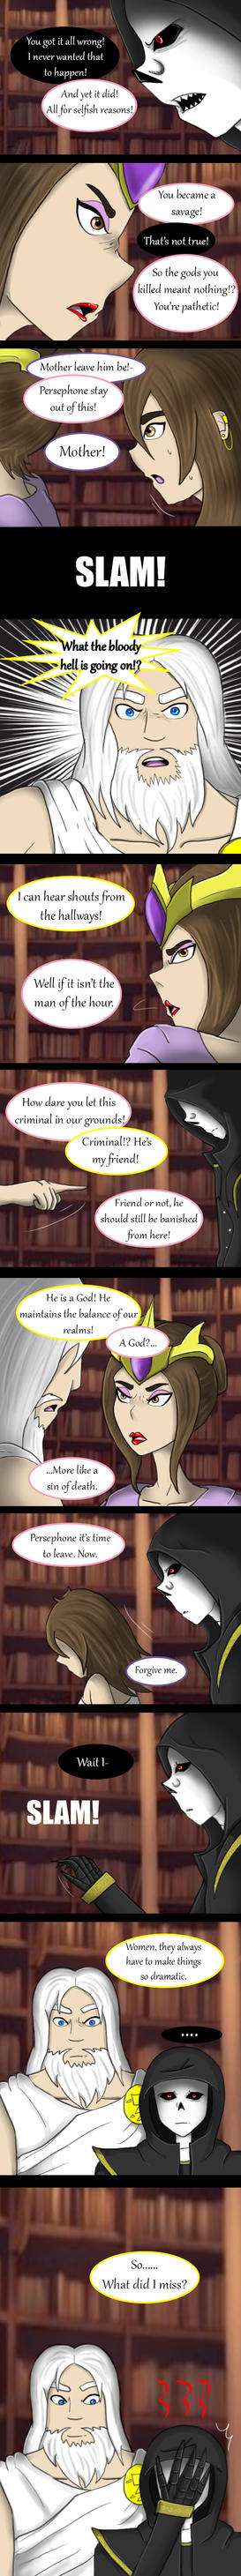 Forbiddentale page 24 by joselyn565